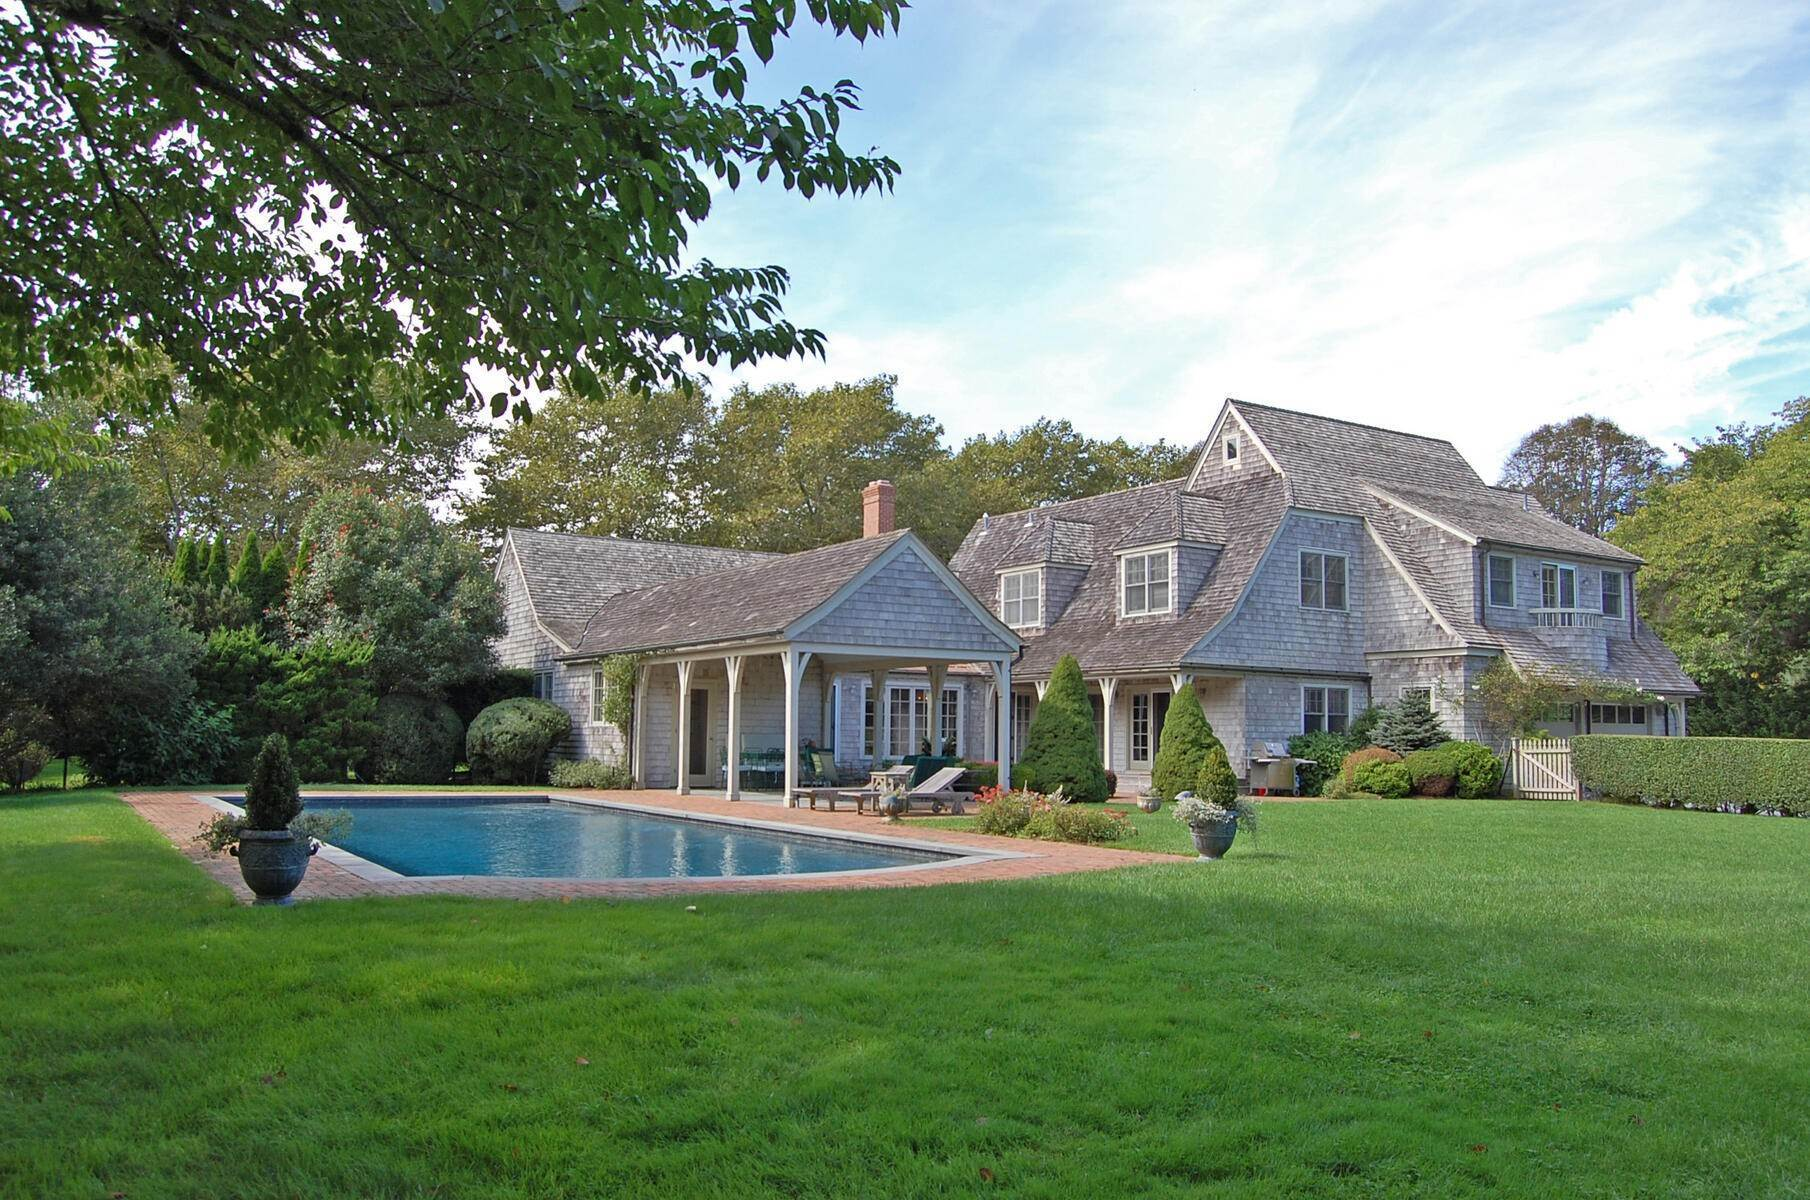 Single Family Home at On A Private Lane East Hampton, NY 11937